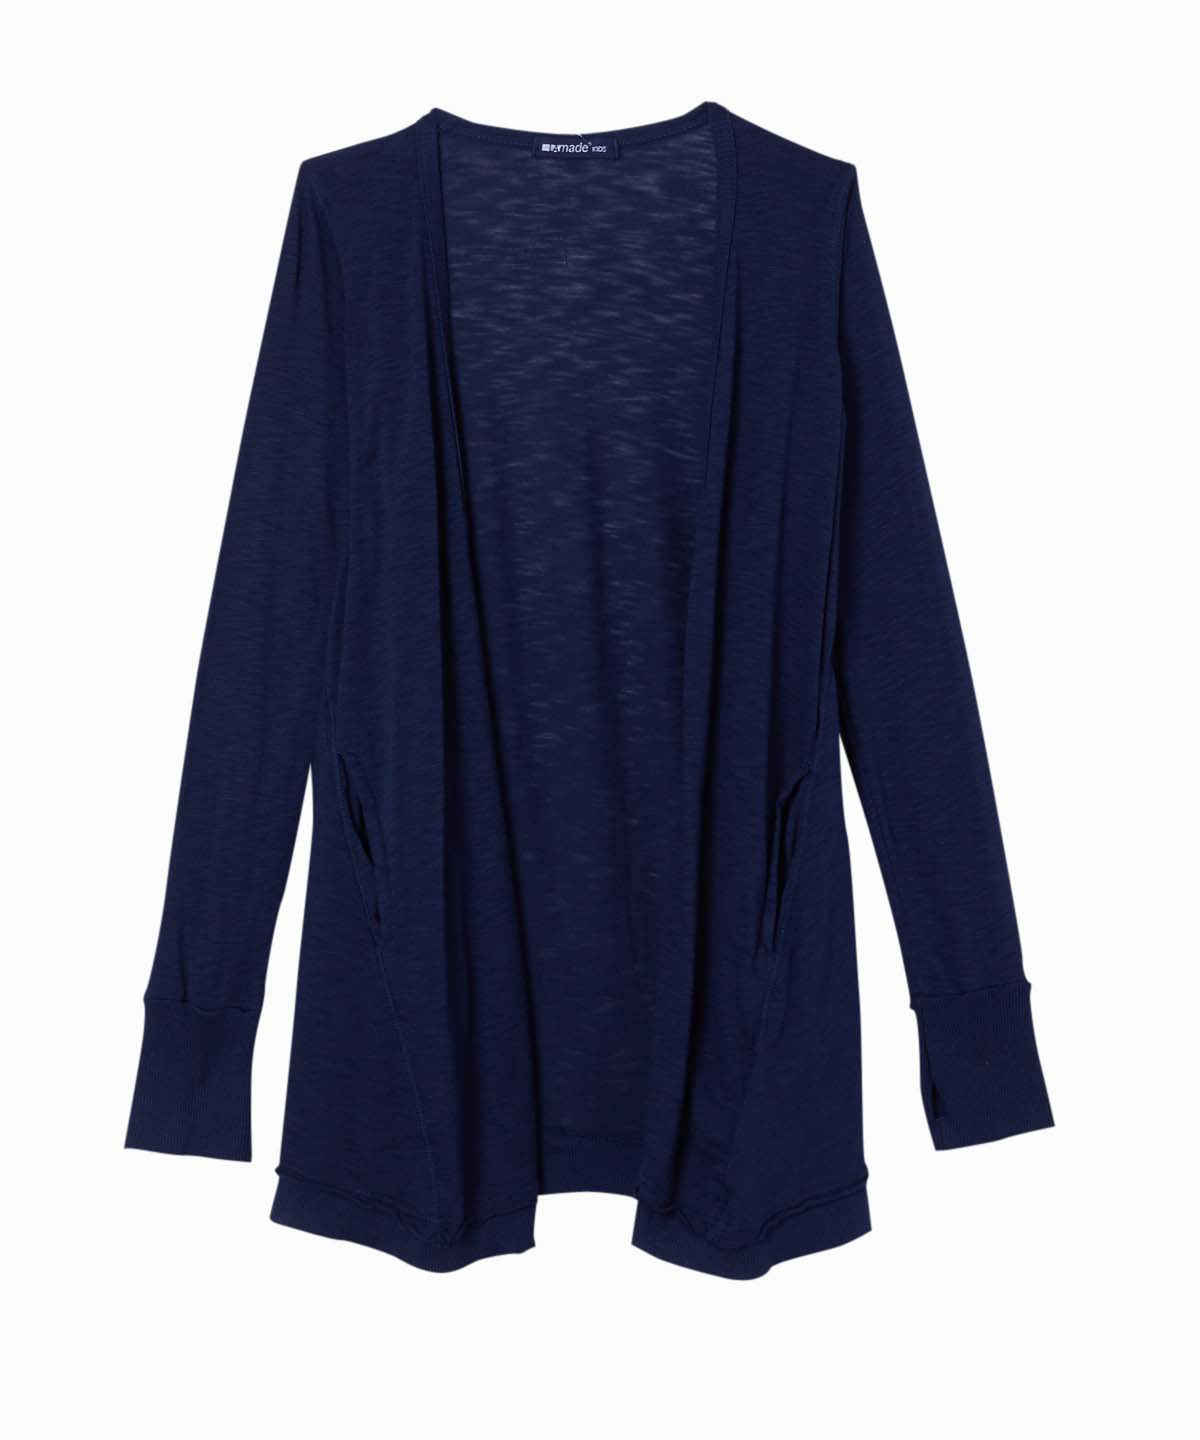 Basic Navy Cardigan